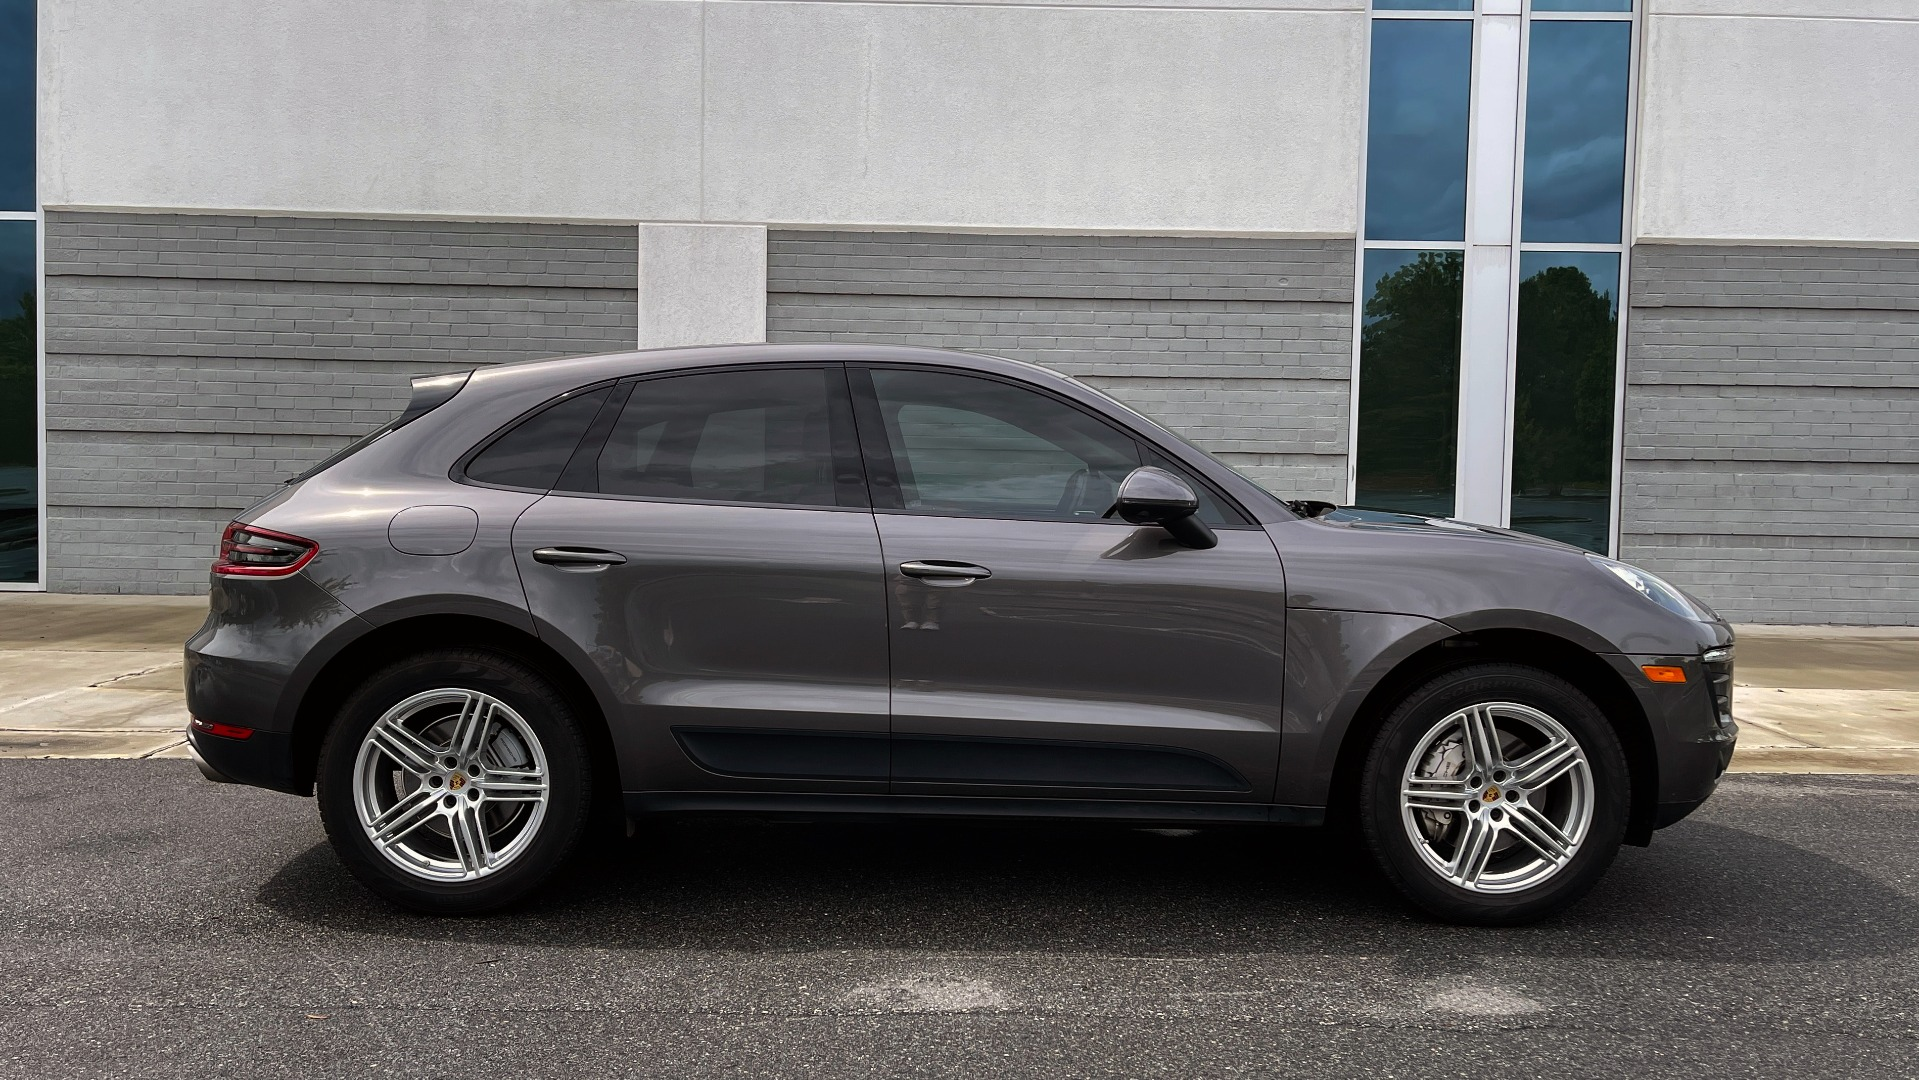 Used 2016 Porsche MACAN S PREMIUM PLUS / AWD / NAV / BOSE / SUNROOF / LCA / PARK ASST / INFOTAINMEN for sale $45,256 at Formula Imports in Charlotte NC 28227 6